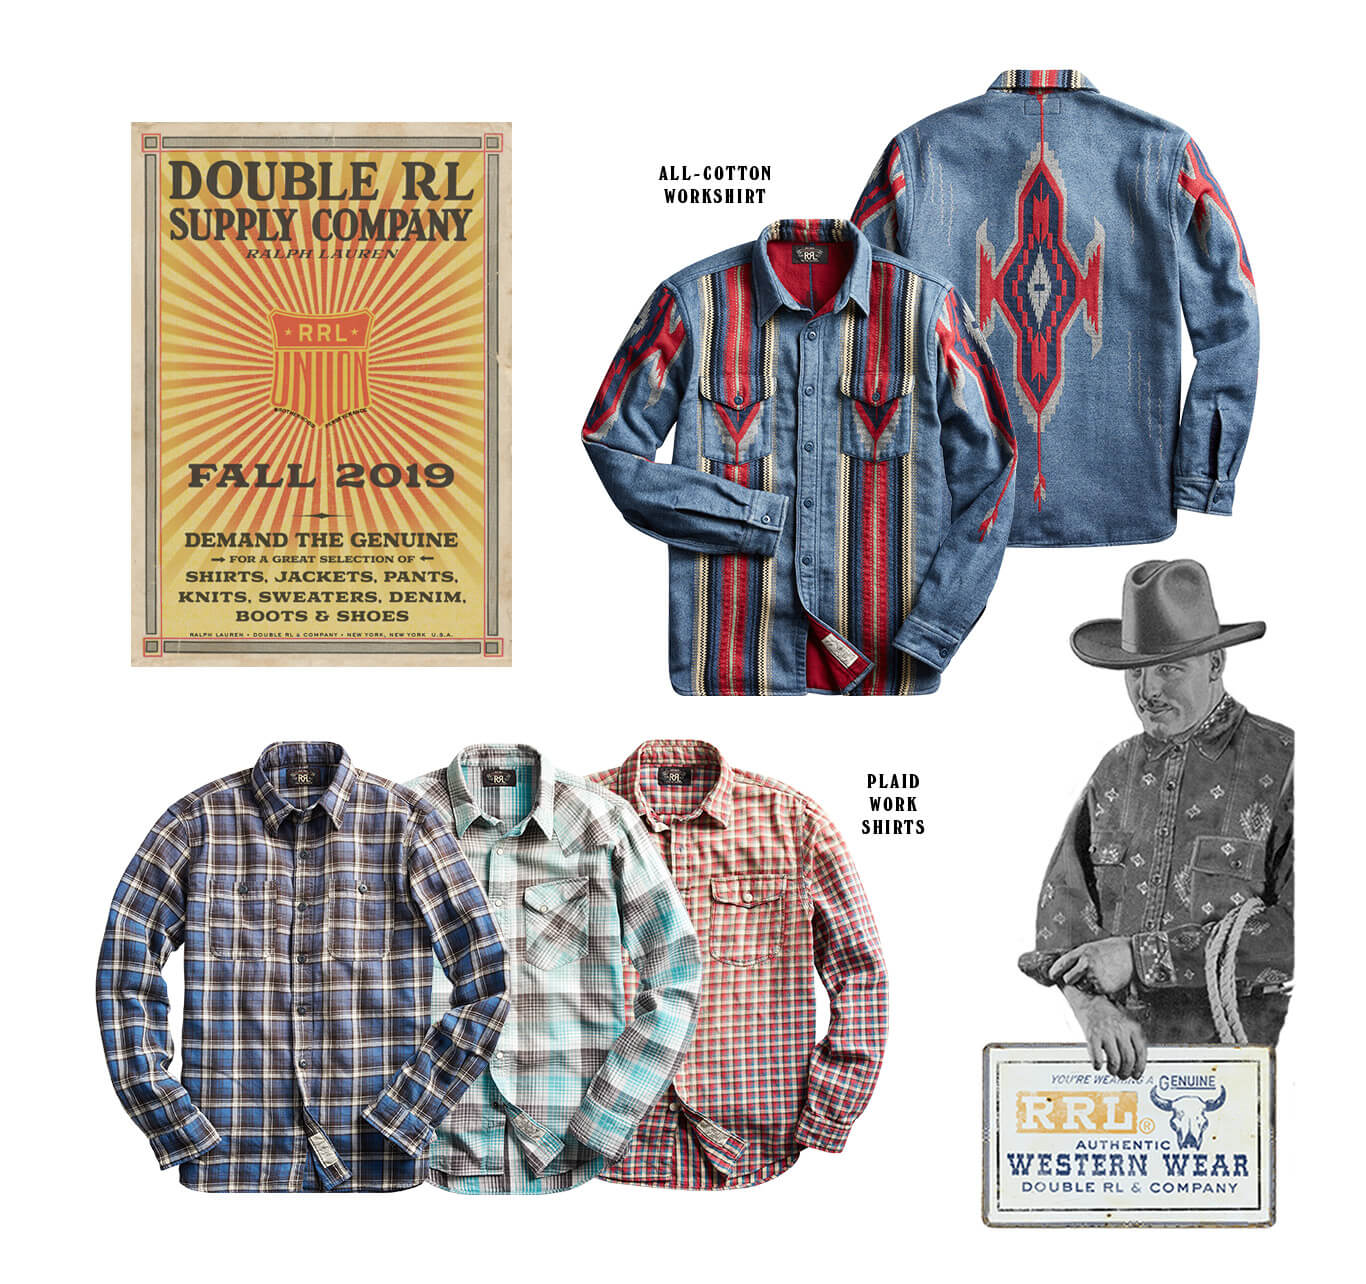 Plaid & Southwestern-inspired button-down shirts